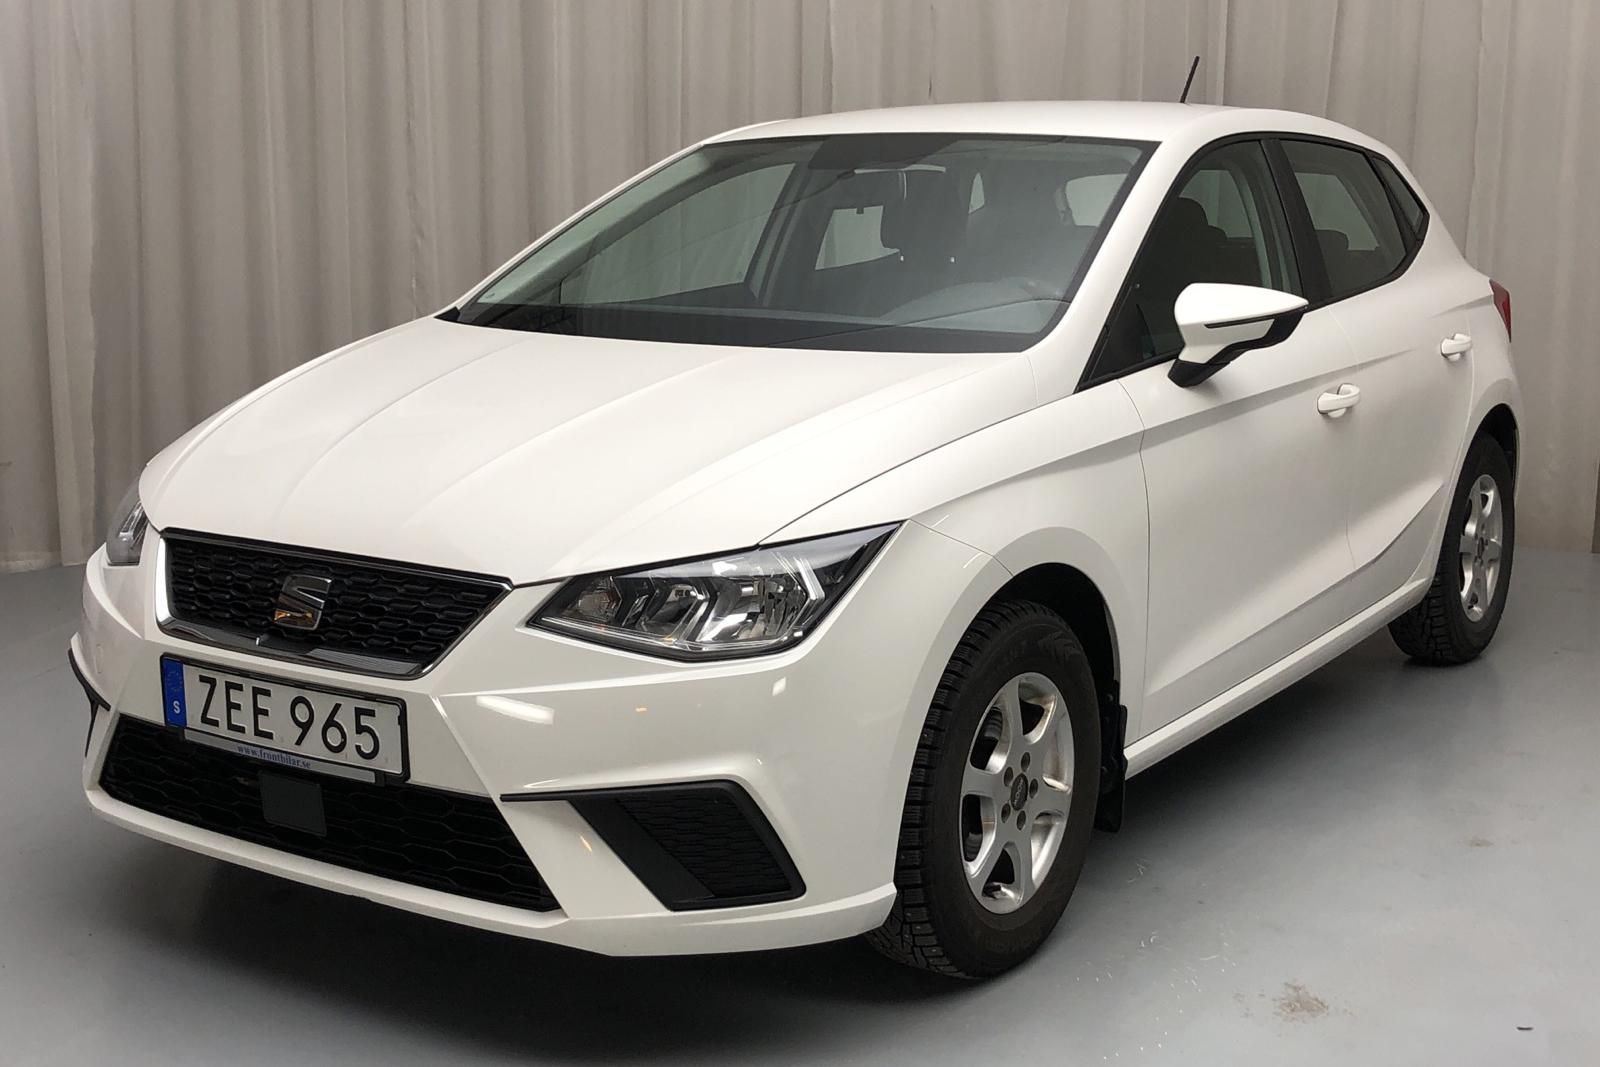 Seat Ibiza 1.0 TSI 5dr (95hk) - 42 710 km - Manual - white - 2018